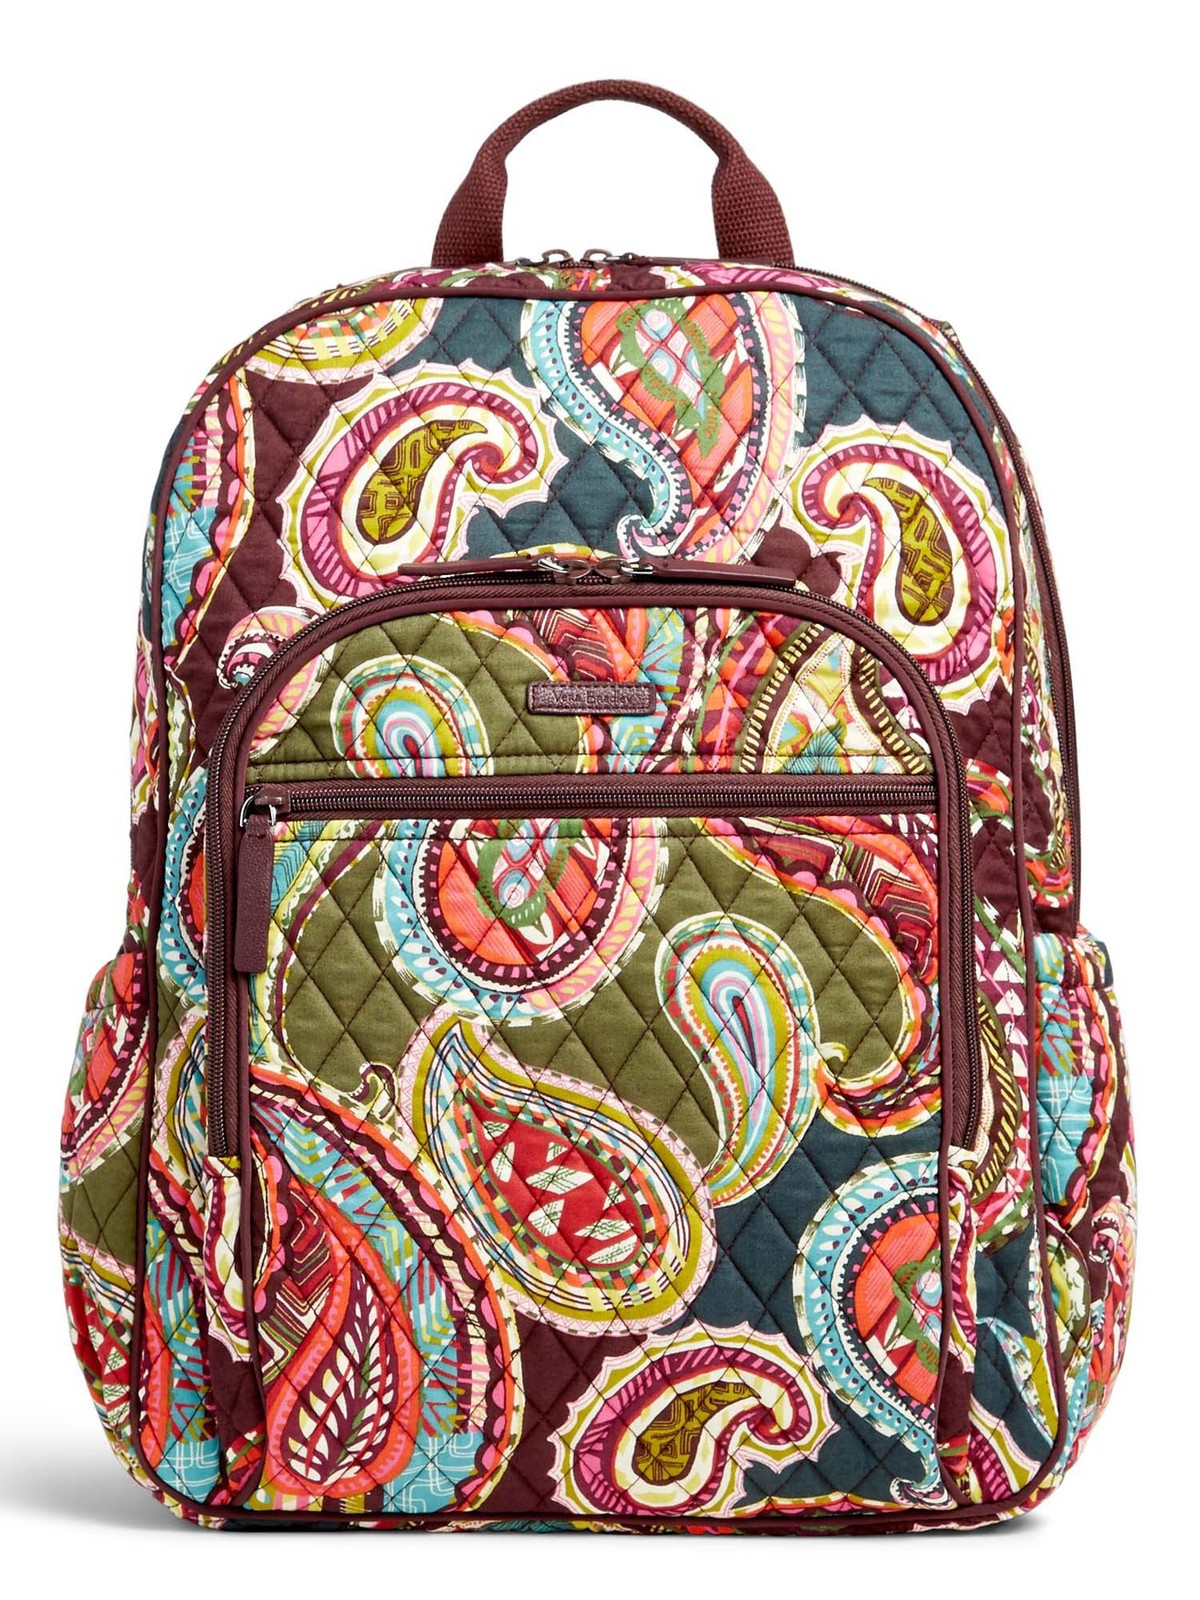 Vera Bradley Signature Cotton Campus Tech Backpack, Heirloom Paisley